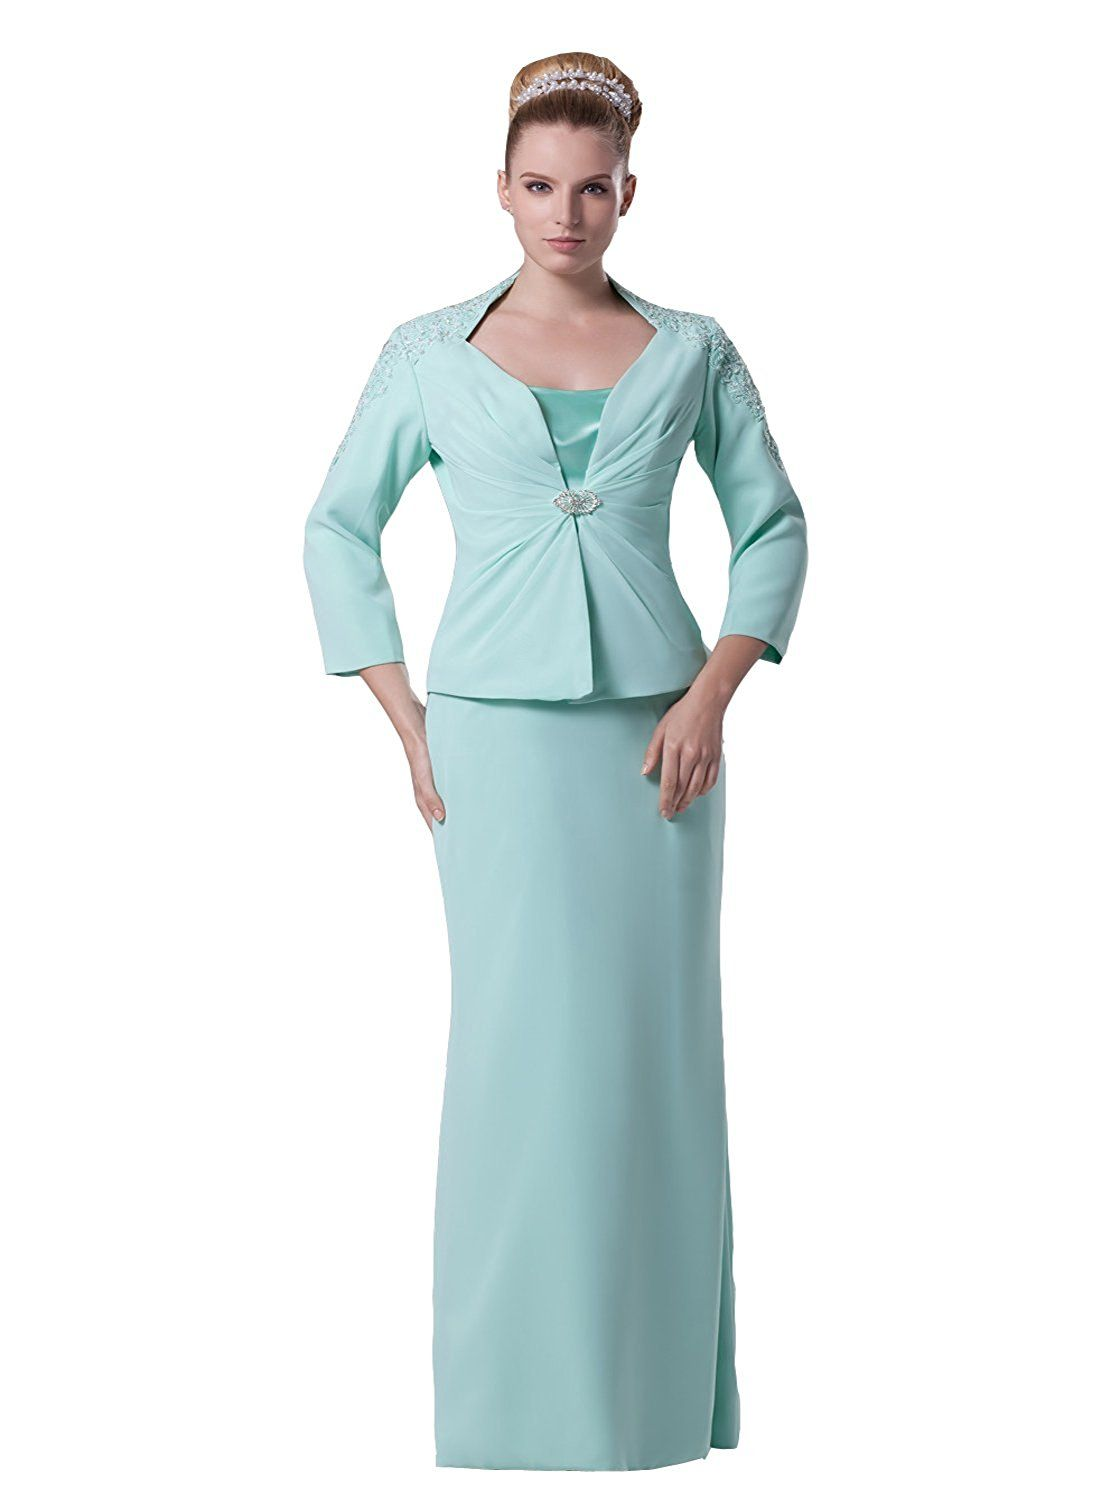 Angel formal dresses womenus applique long sleves mother of the